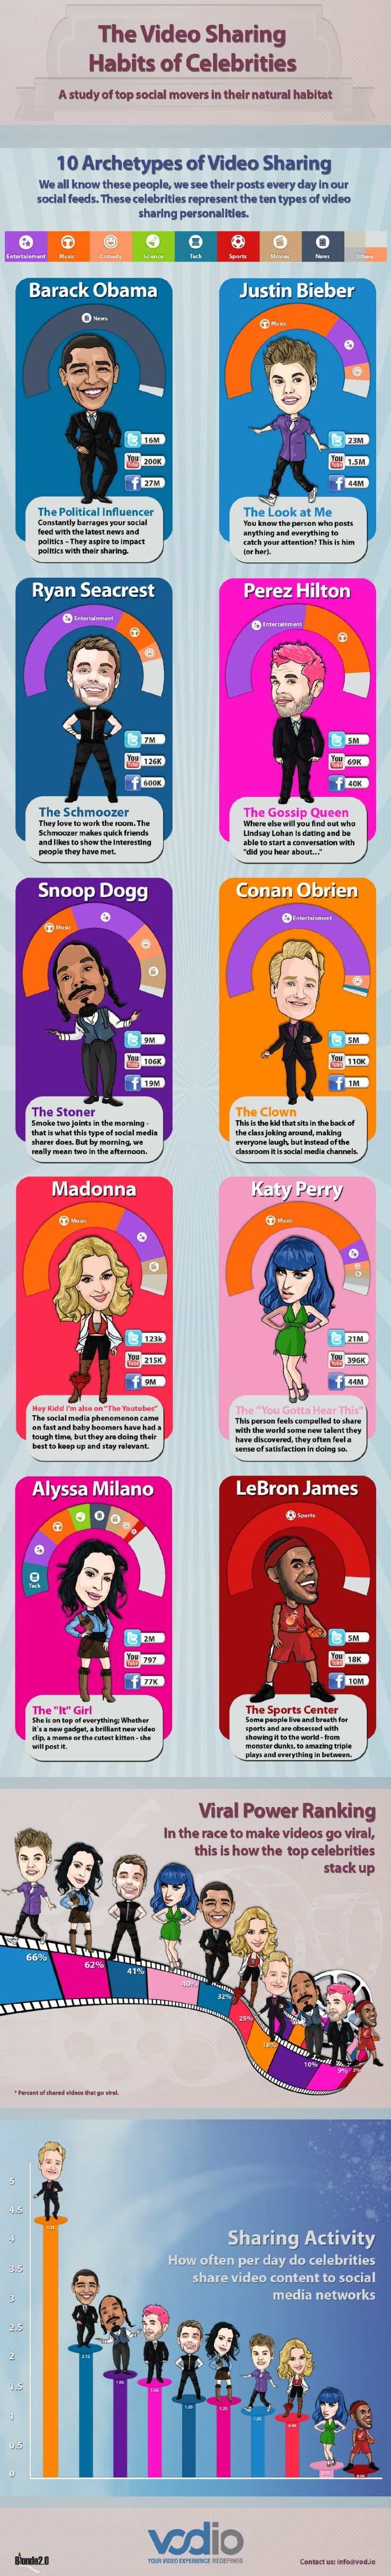 How Social Media Savvy Celebrities Share Video